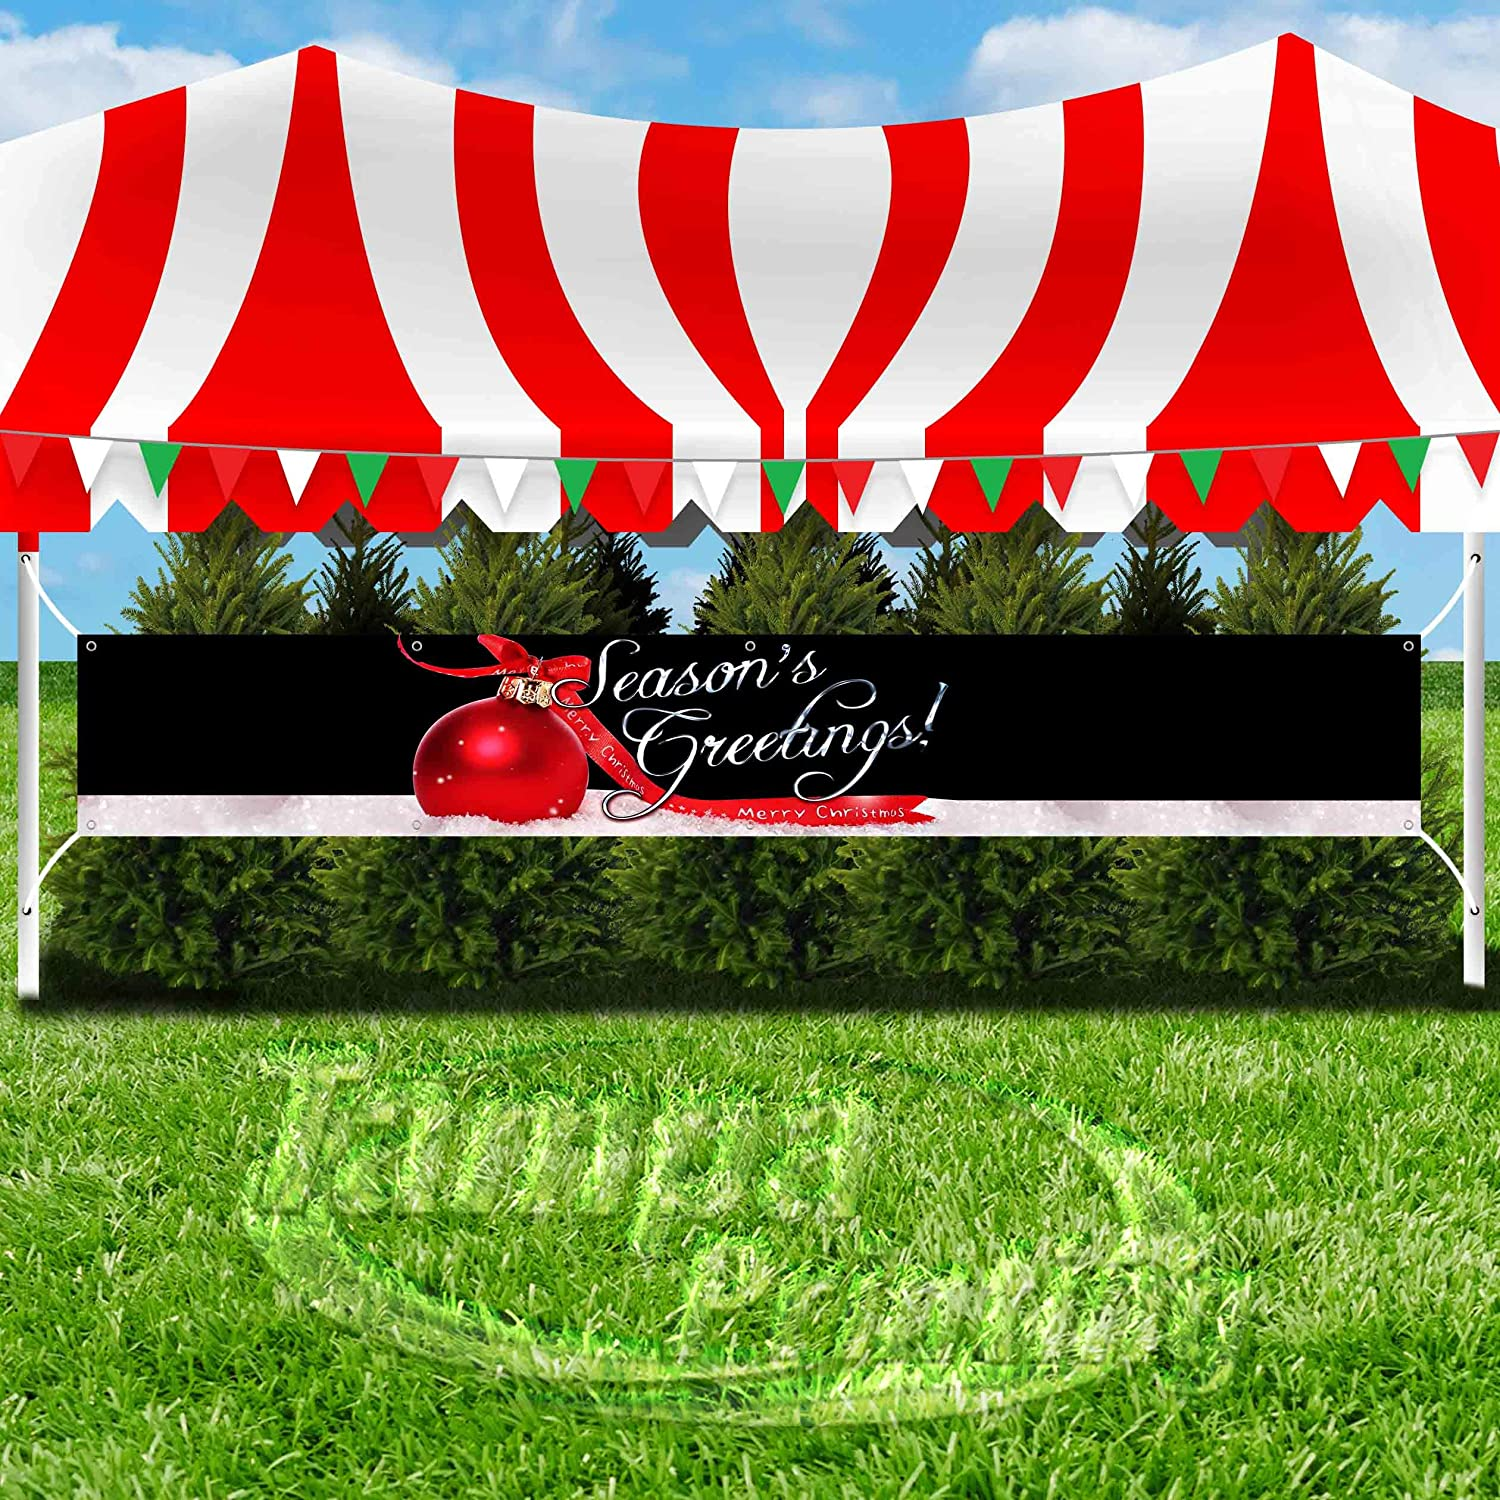 Many Sizes Available Store New Flag, Advertising Seasons Greetings Extra Large 13 oz Heavy Duty Vinyl Banner Sign with Metal Grommets